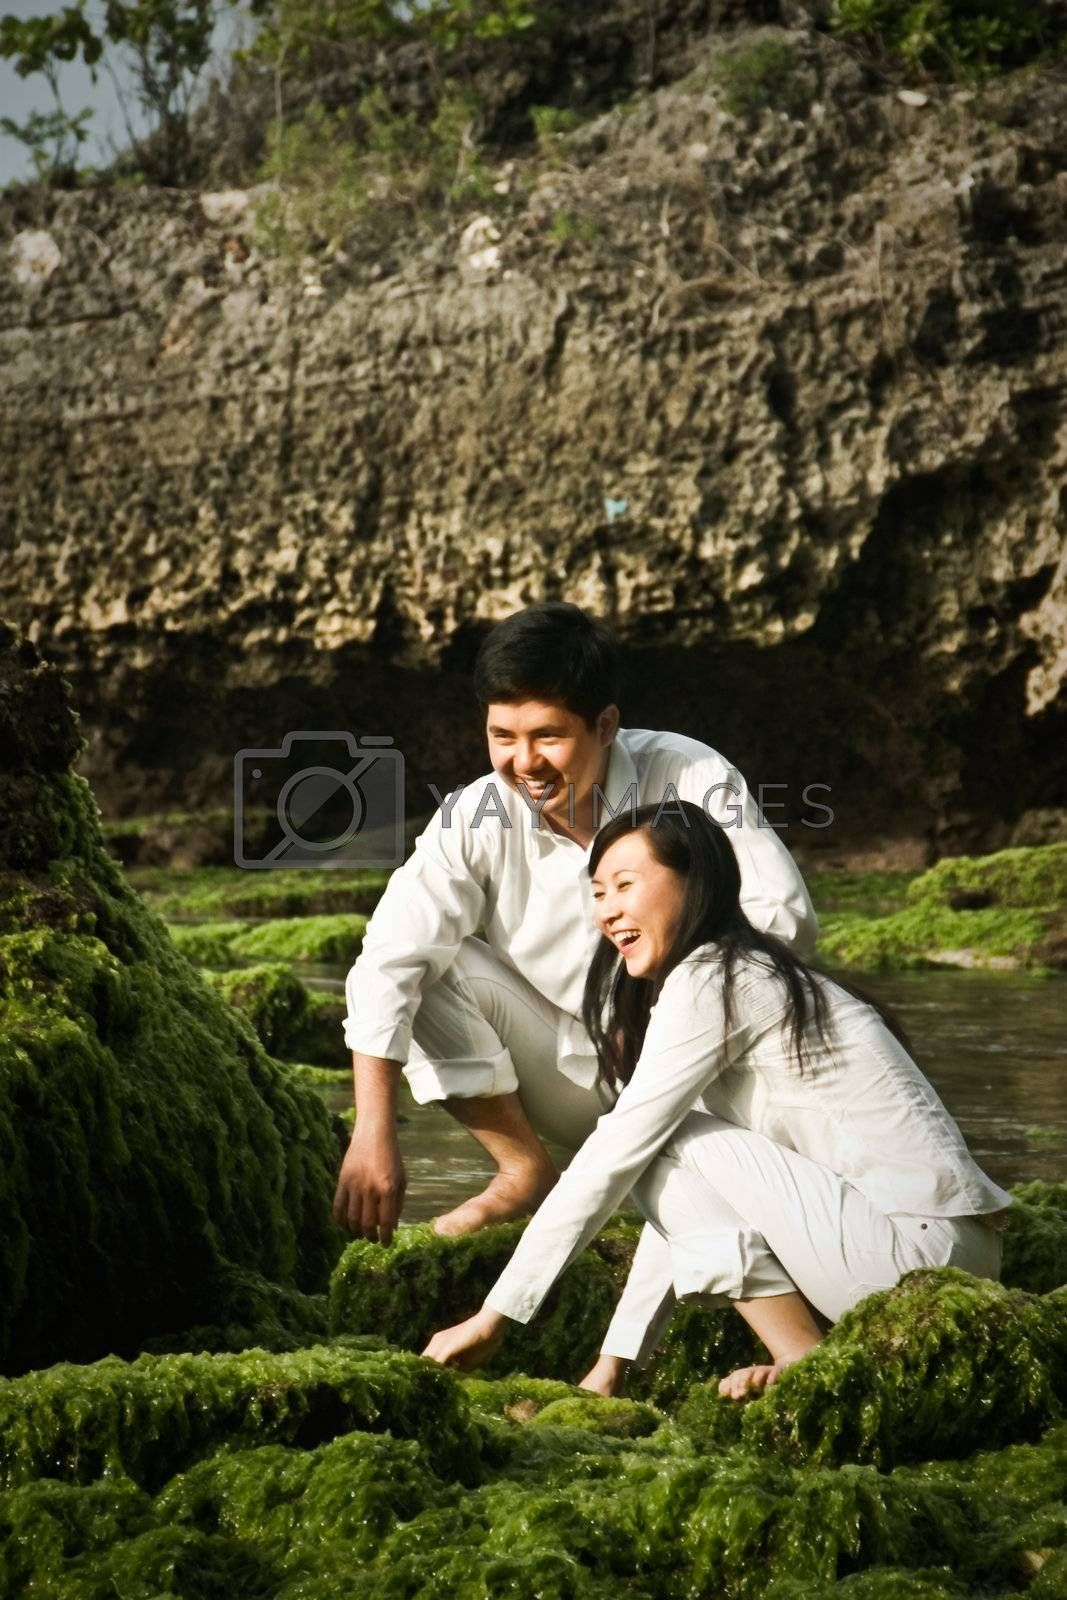 Royalty free image of A Couple in White by zhen2